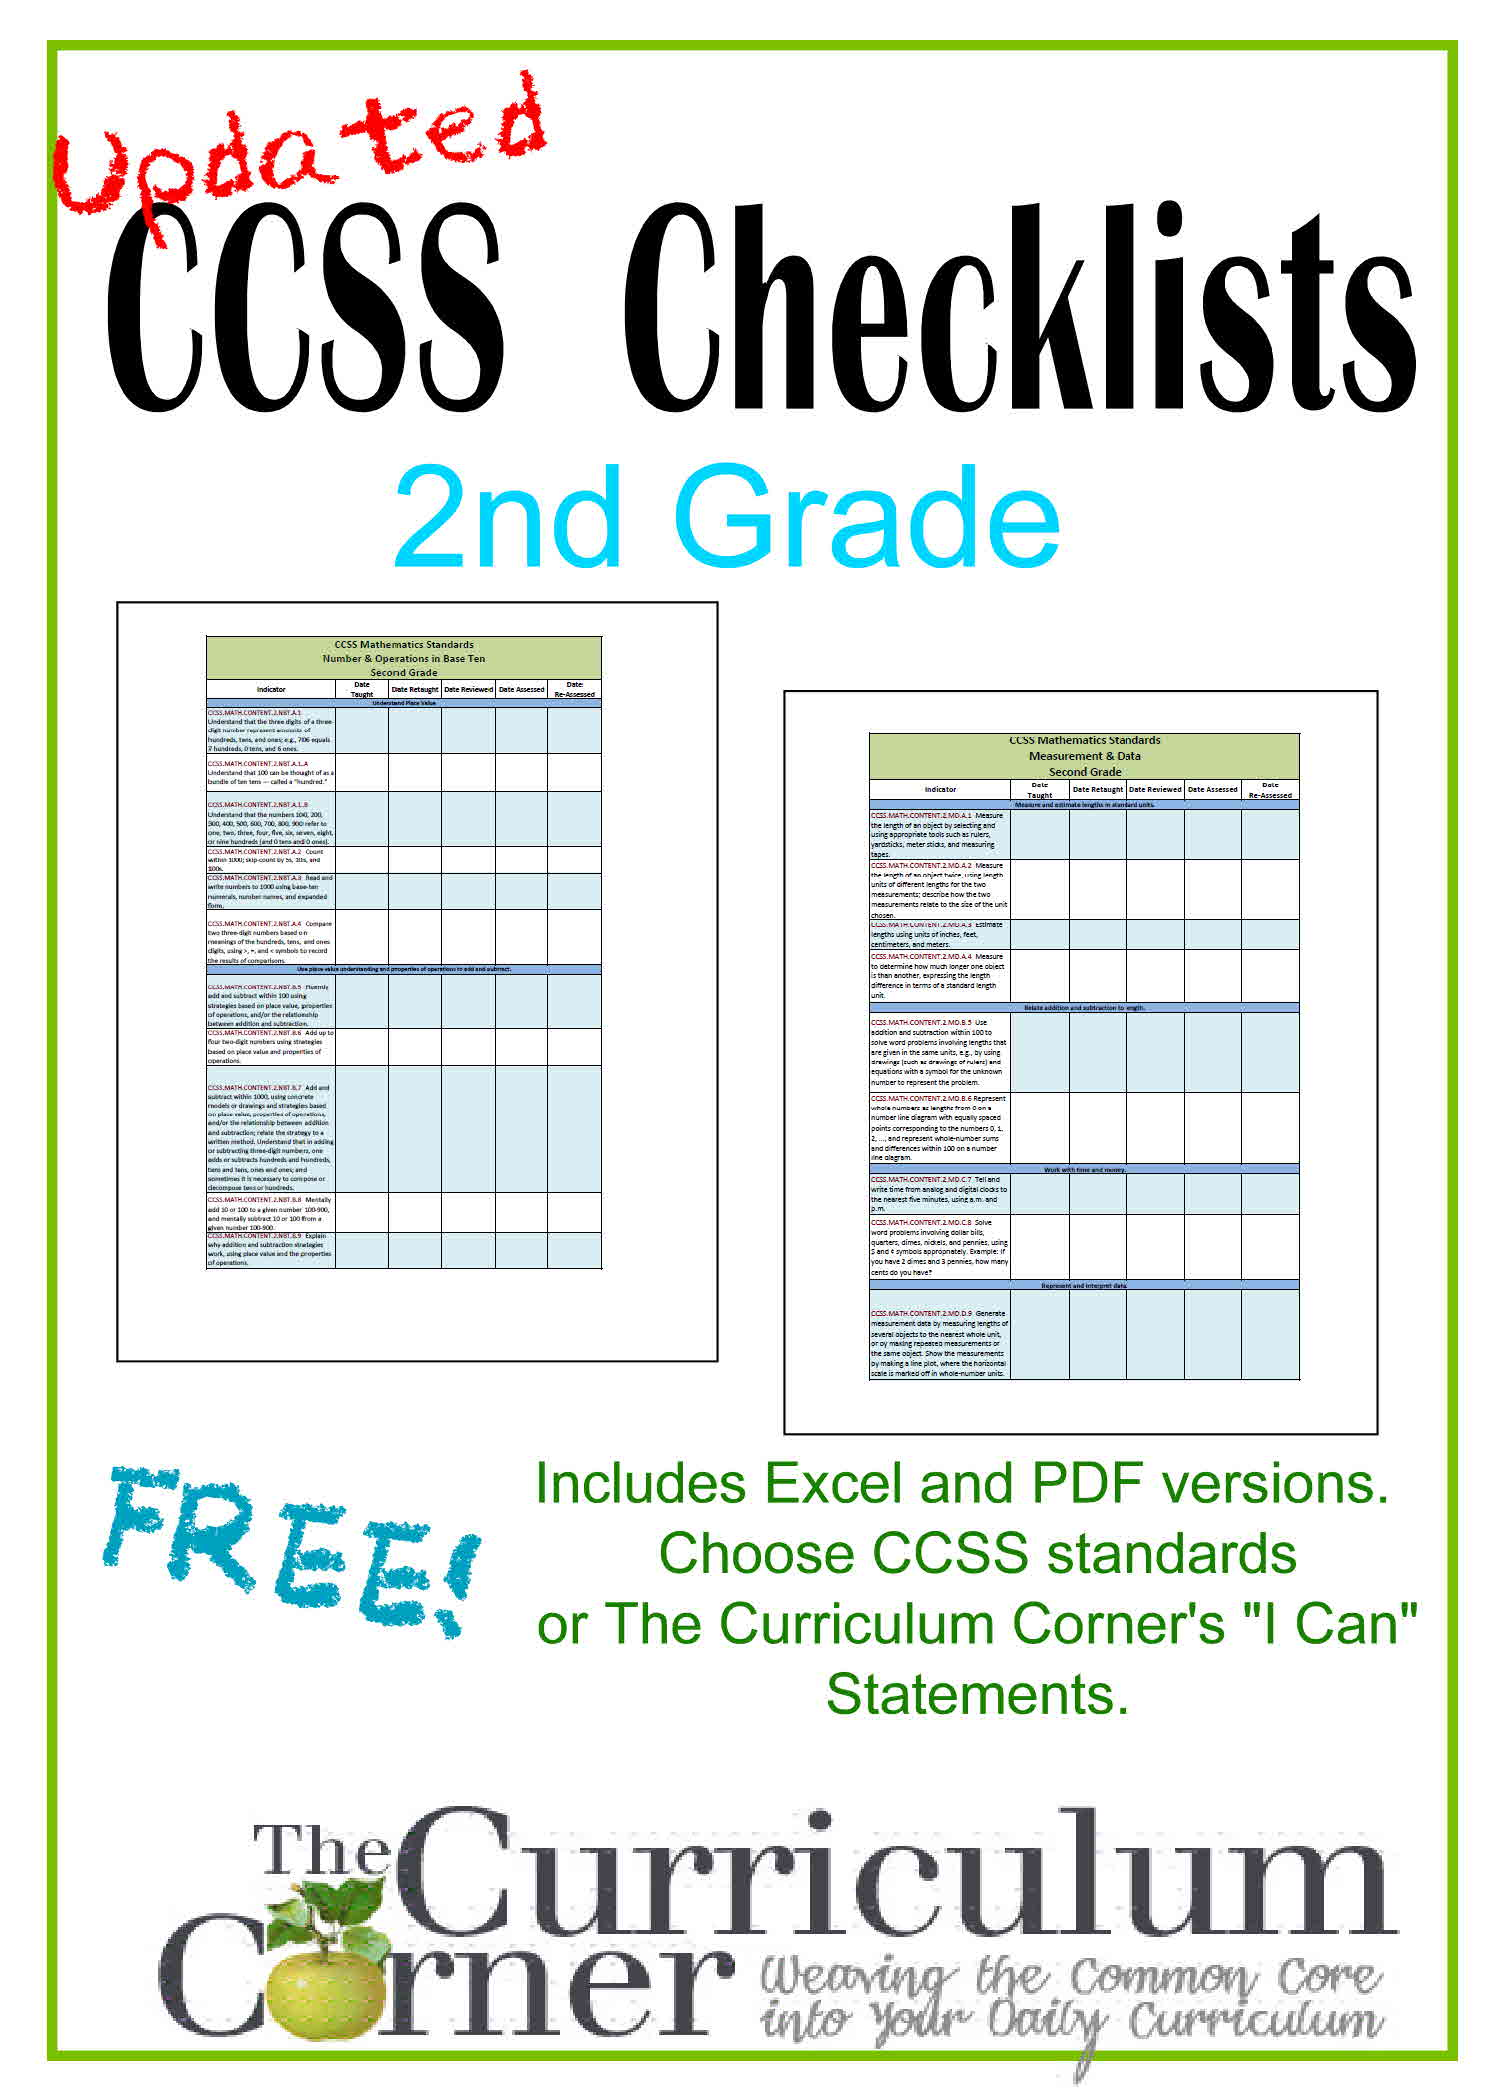 Updated 2nd Grade CCSS